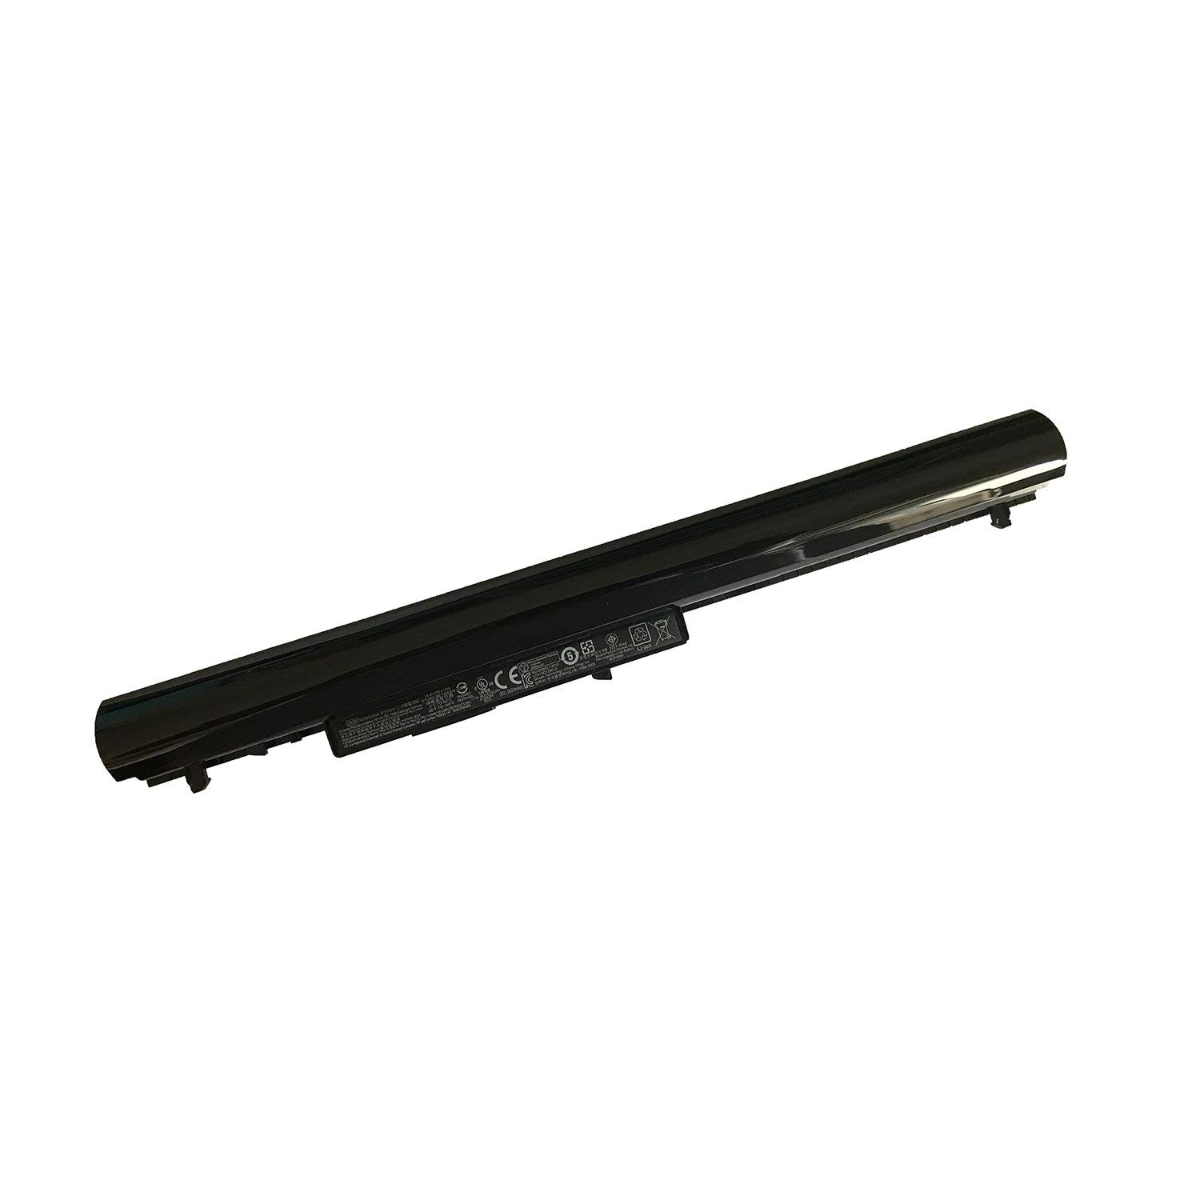 Μπαταρία Laptop - Battery for HP 15-D040CA 15-D040DX 15-D040NR 15-D040NR TS 15-D040SE 15-D040SW 15-D041DX 15-D041EE 15-D041SE 15-D041TU OEM Υψηλής ποιότητας (Κωδ.1-BAT0002)